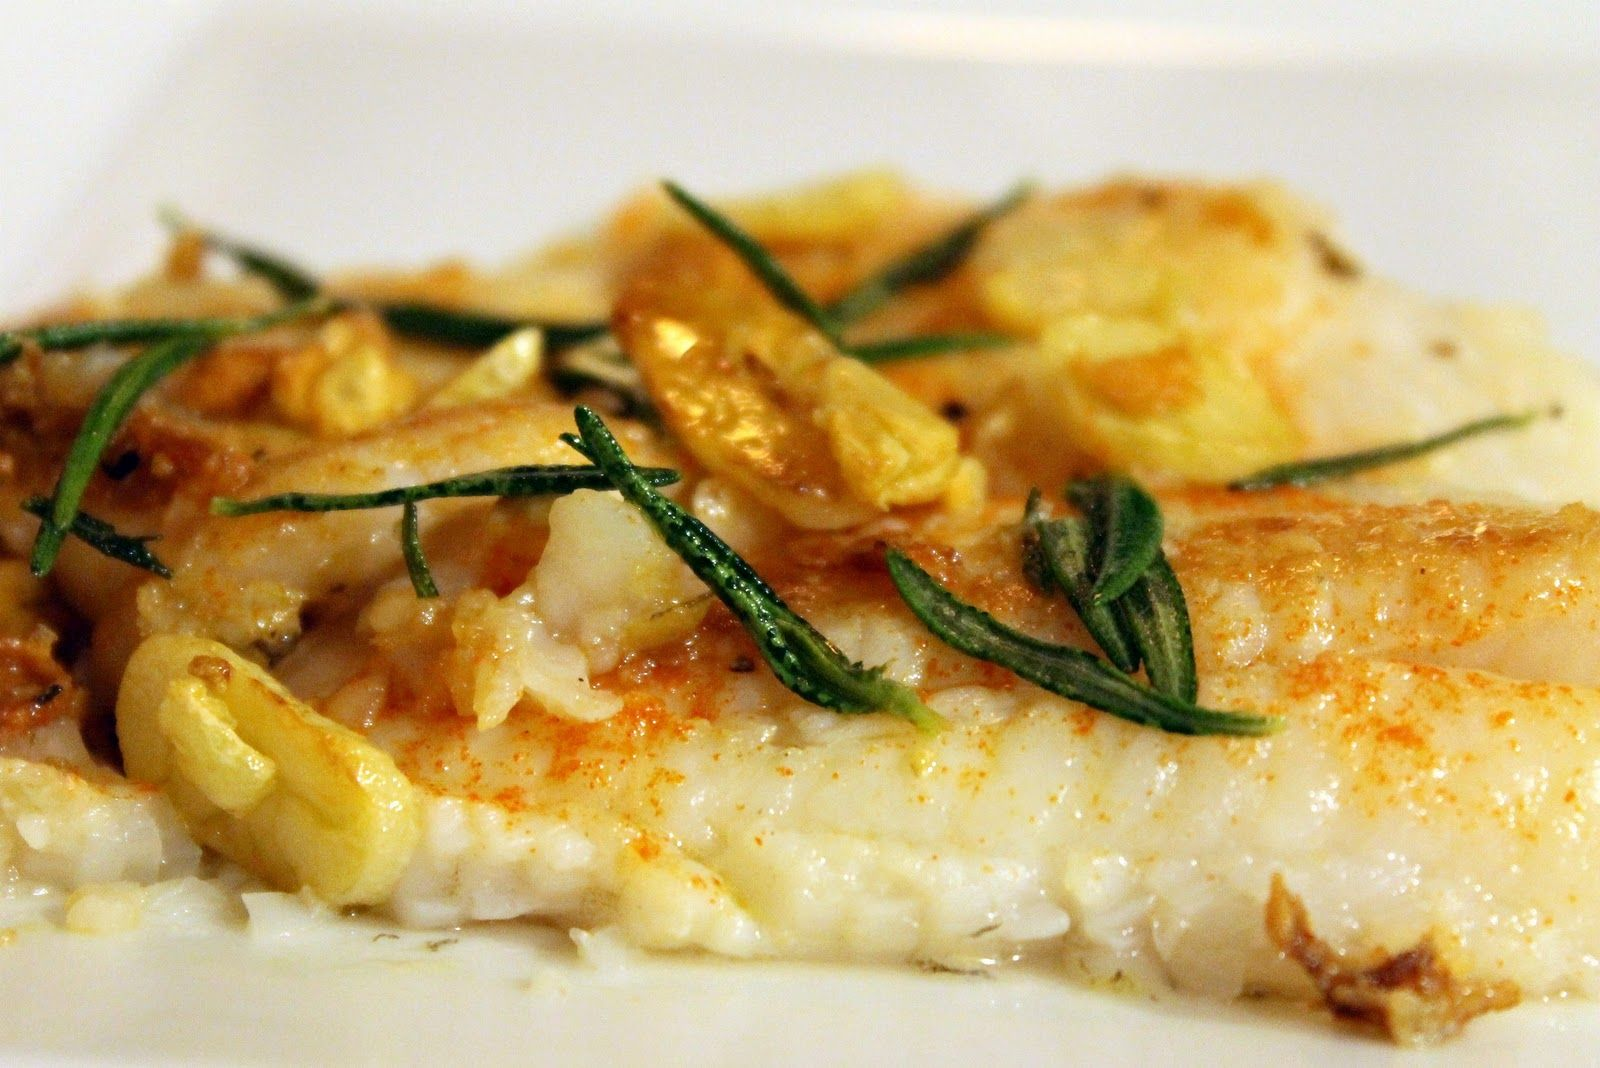 Pan Seared Flounder With Fried Rosemary Amp Garlic Recipe